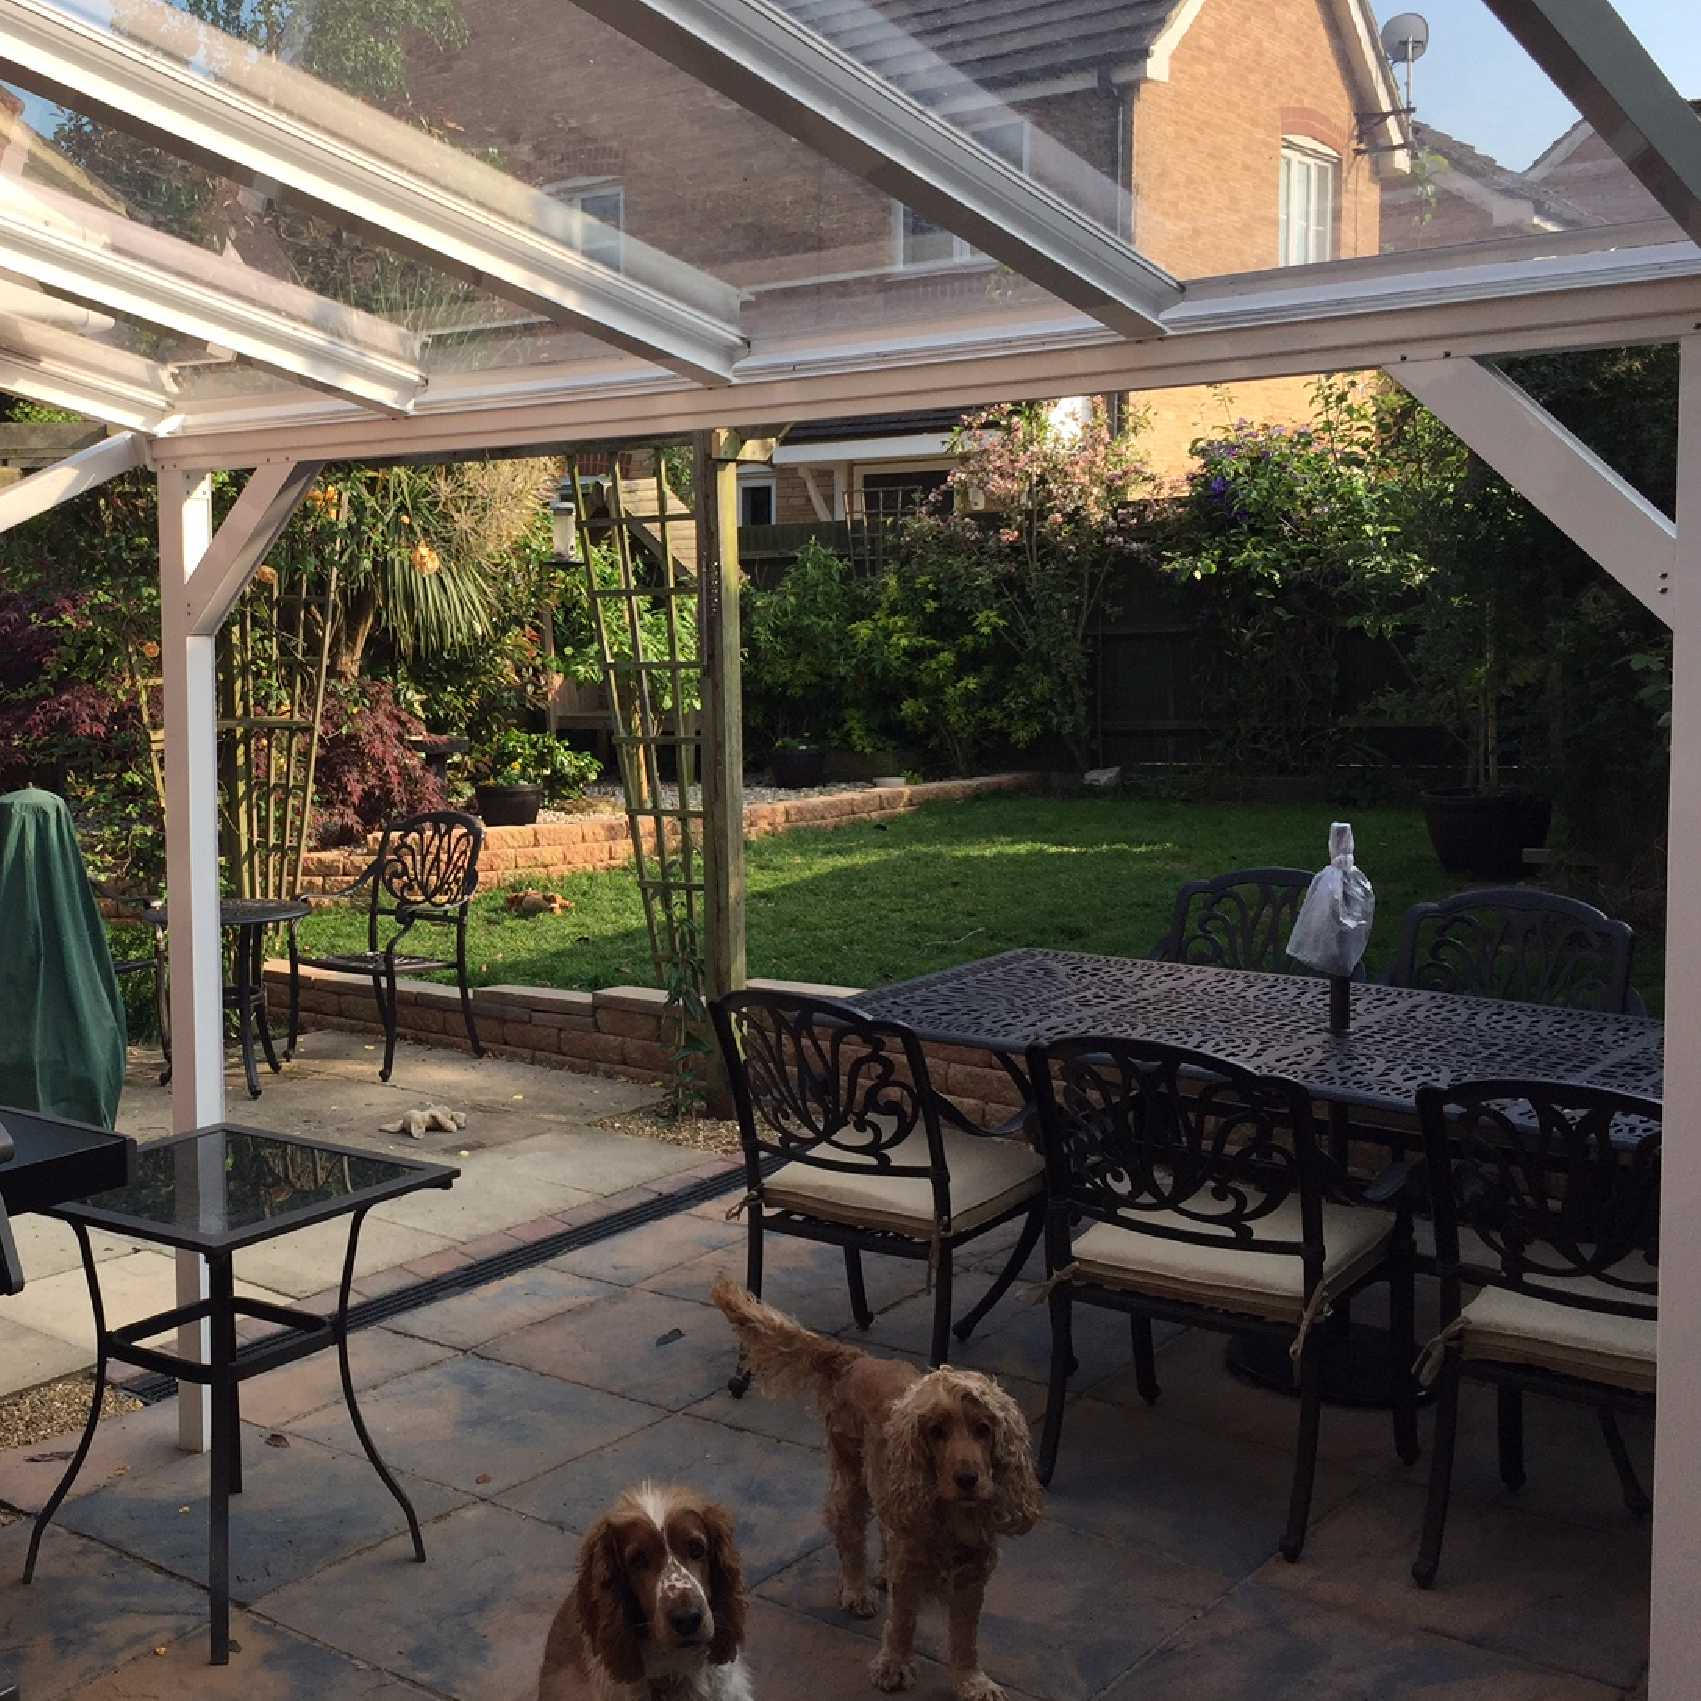 Affordable Omega Smart Lean-To Canopy with 6mm Glass Clear Plate Polycarbonate Glazing - 7.7m (W) x 2.5m (P), (4) Supporting Posts